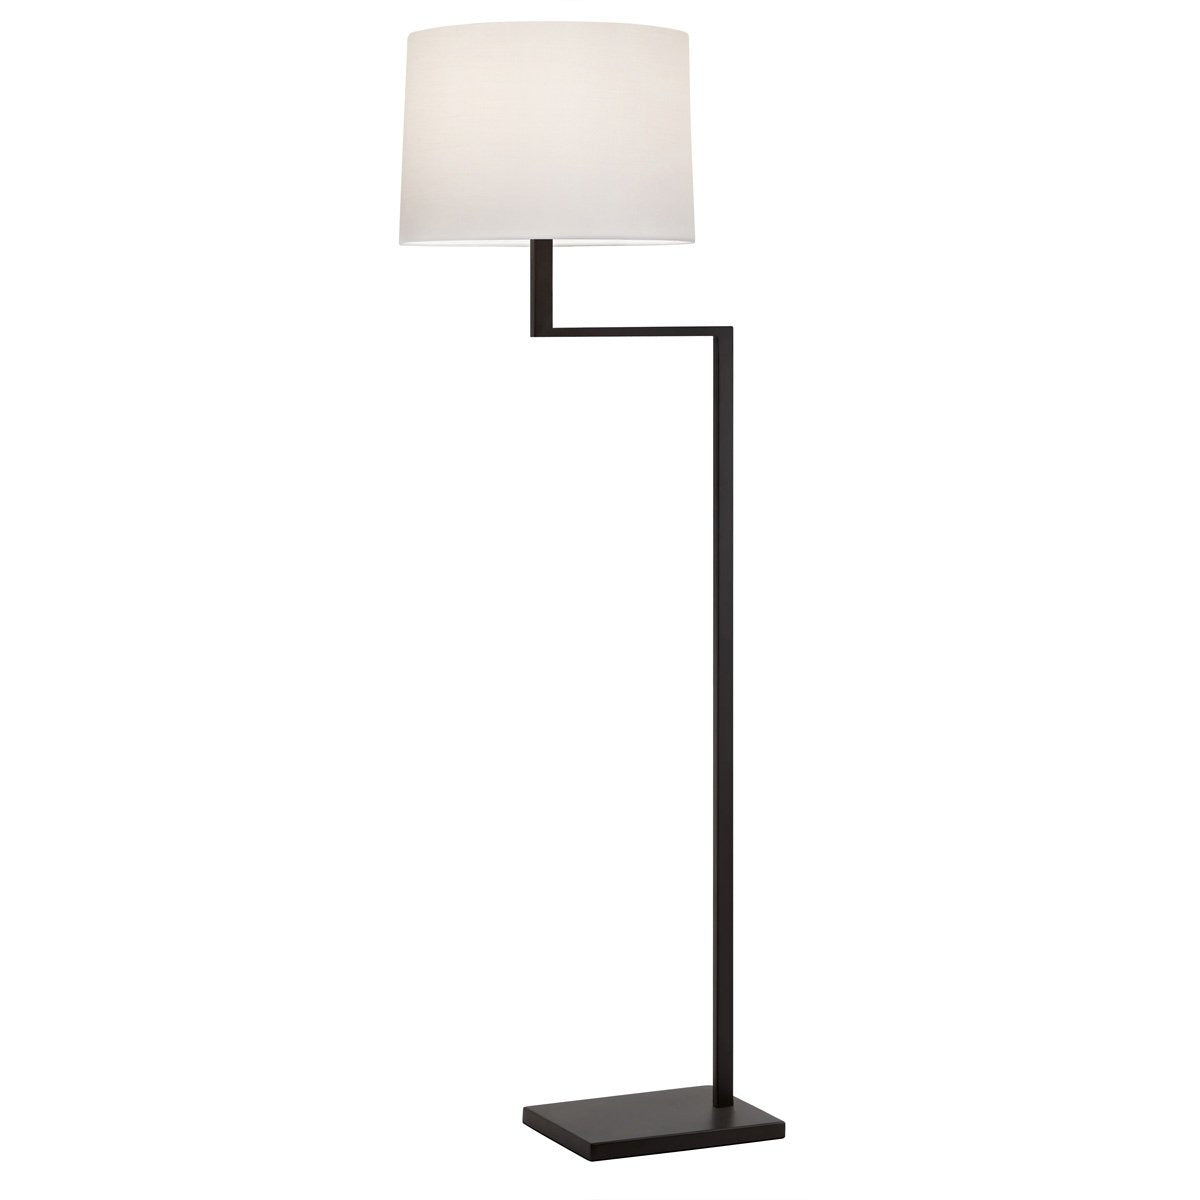 Sonneman - A Way of Light - 6426.27 - One Light Floor Lamp - Thick Thin - Coffee Bronze